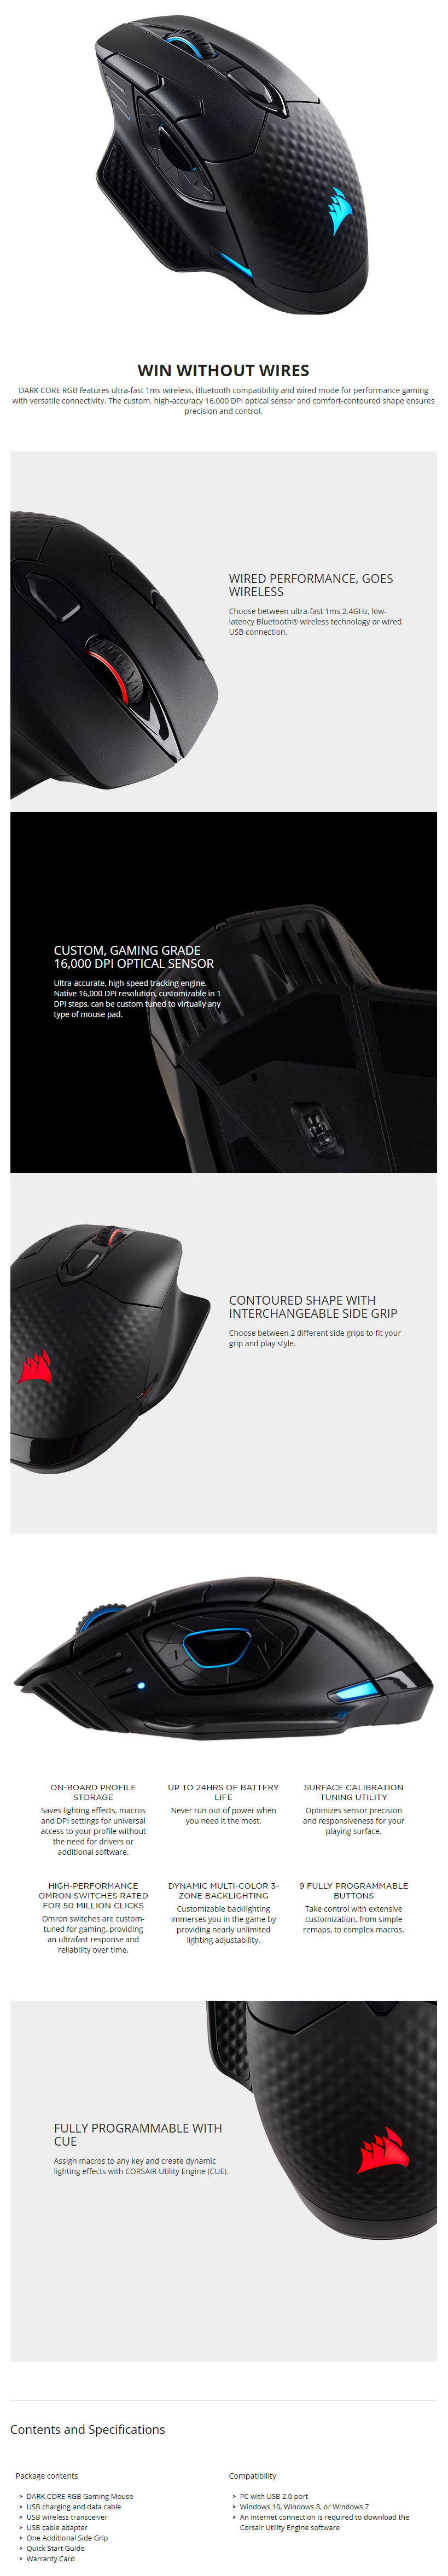 A large marketing image providing additional information about the product Corsair Gaming Dark Core RGB Wireless Optical Gaming Mouse - Additional alt info not provided